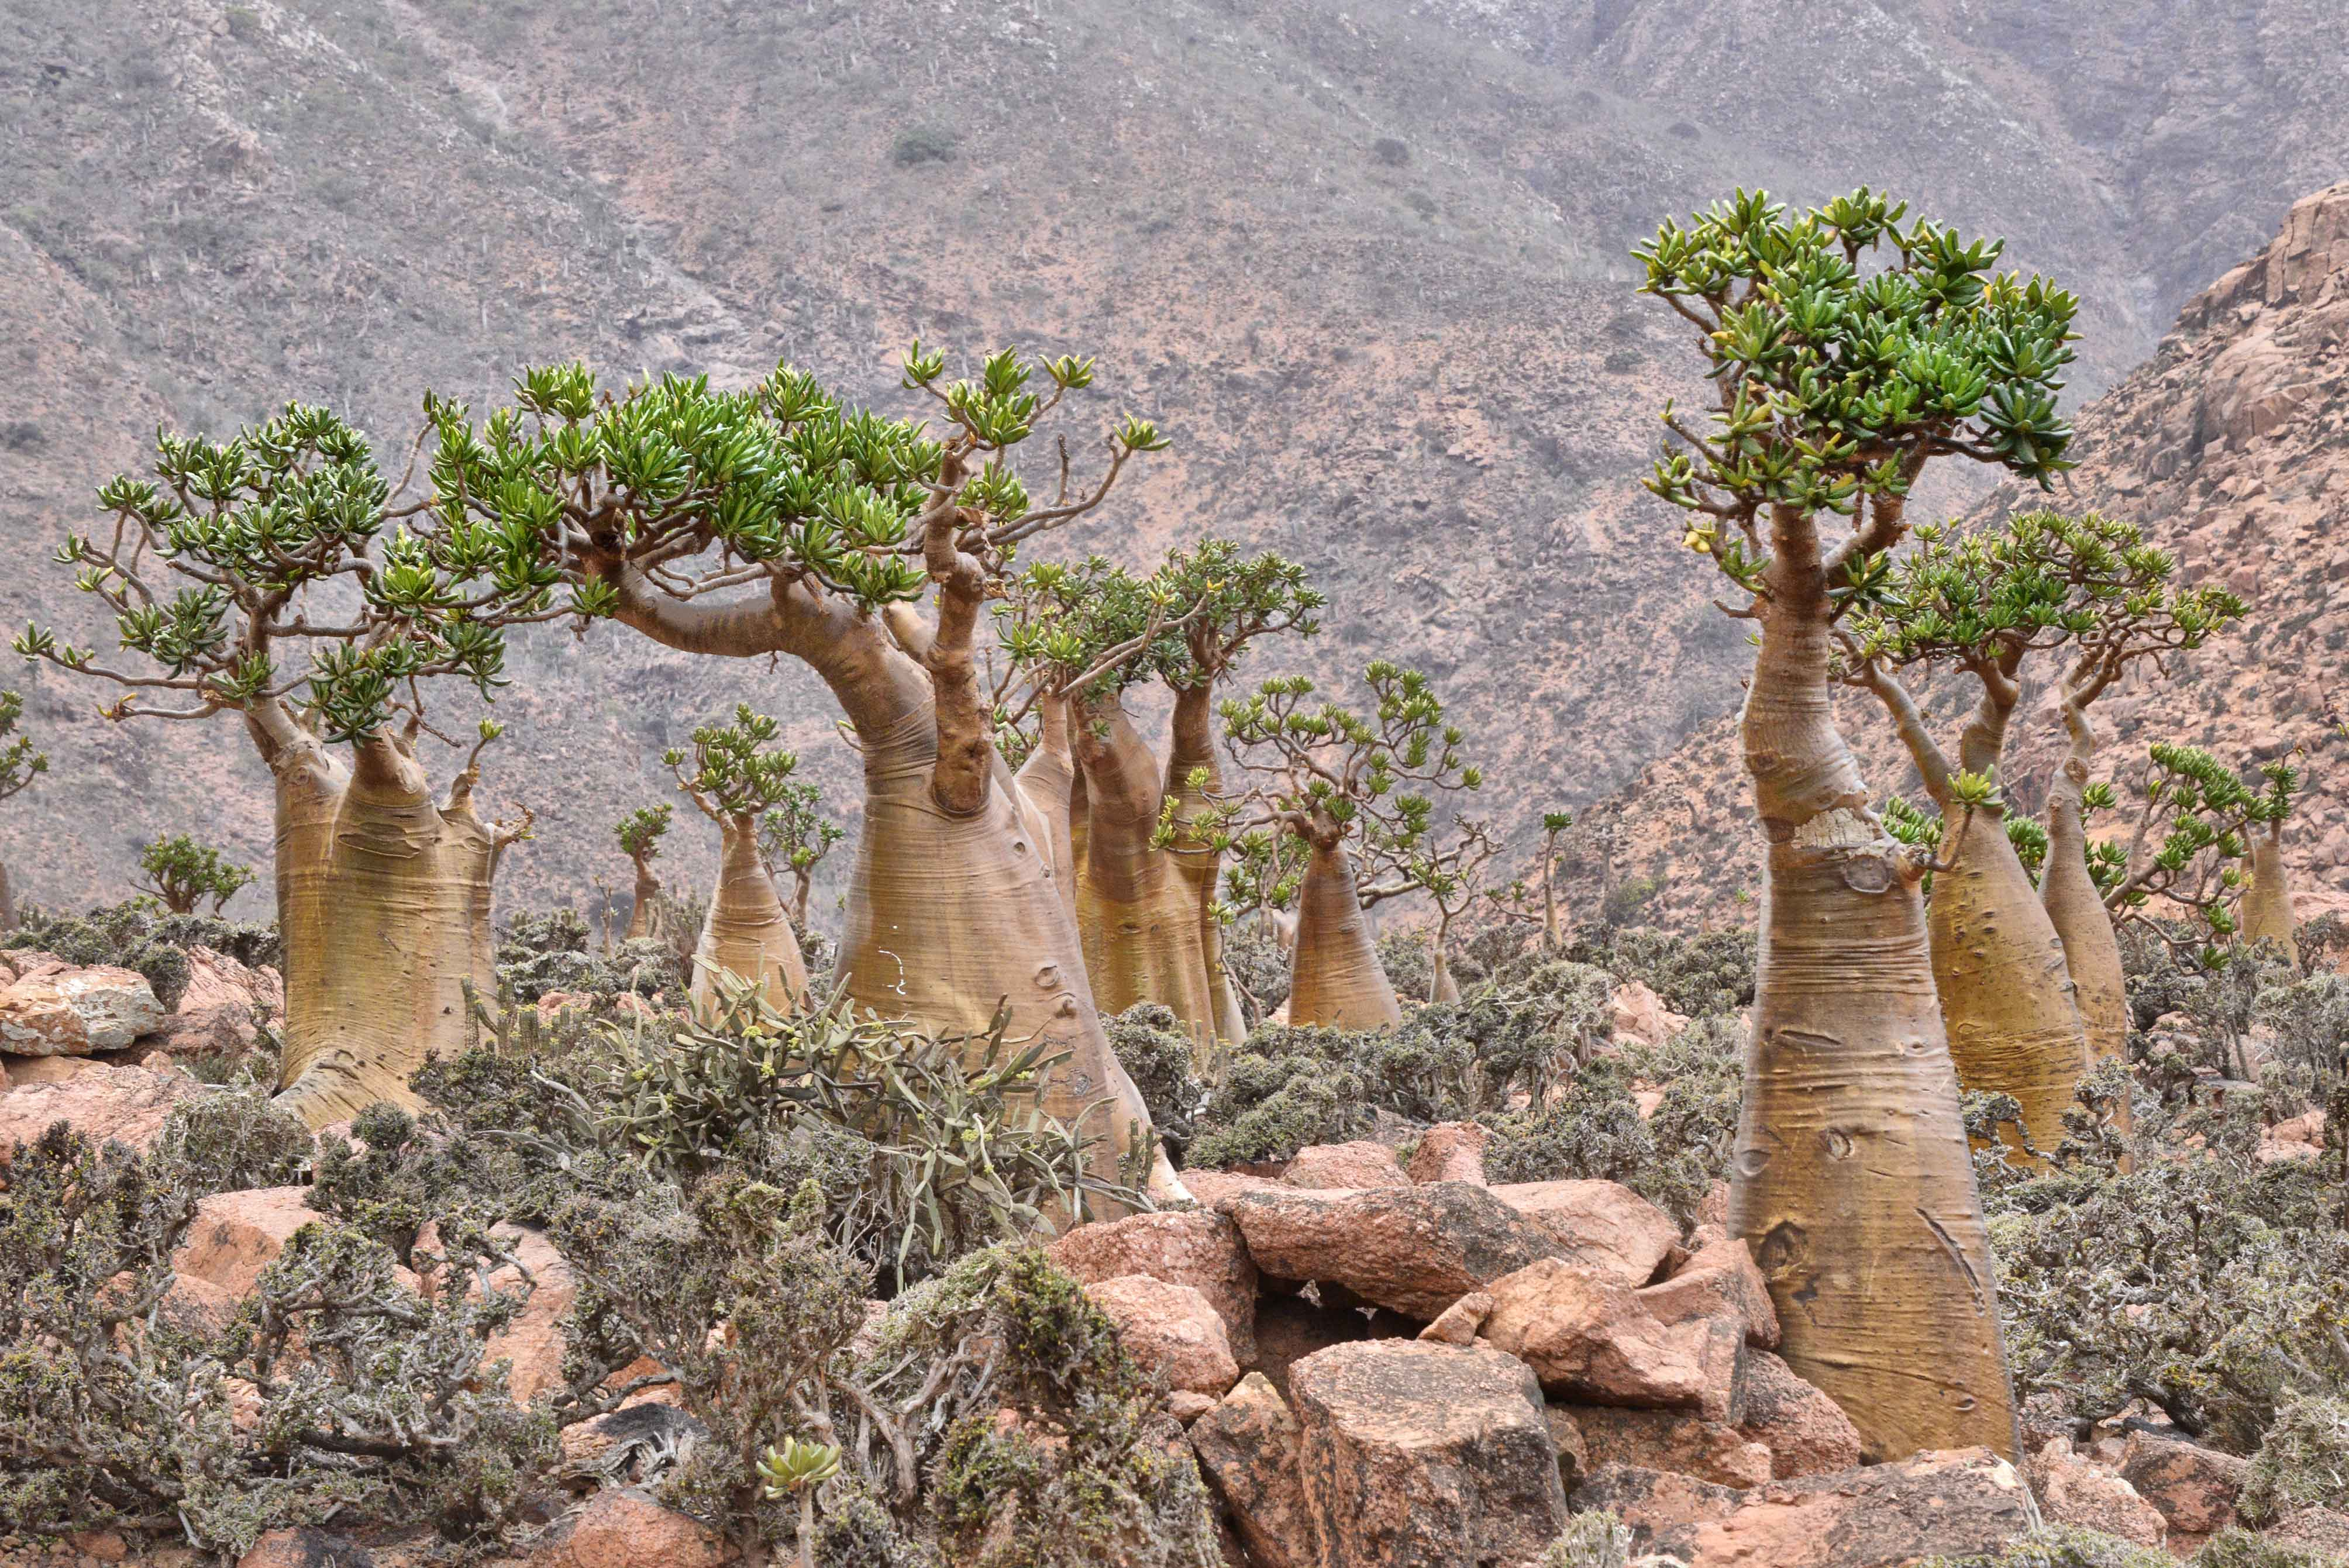 By Rod Waddington from Kergunyah, Australia (Bottle Trees, Socotra Island  Uploaded by russavia) [CC-BY-SA-2.0 (http://creativecommons.org/licenses/by-sa/2.0)], via Wikimedia Commons